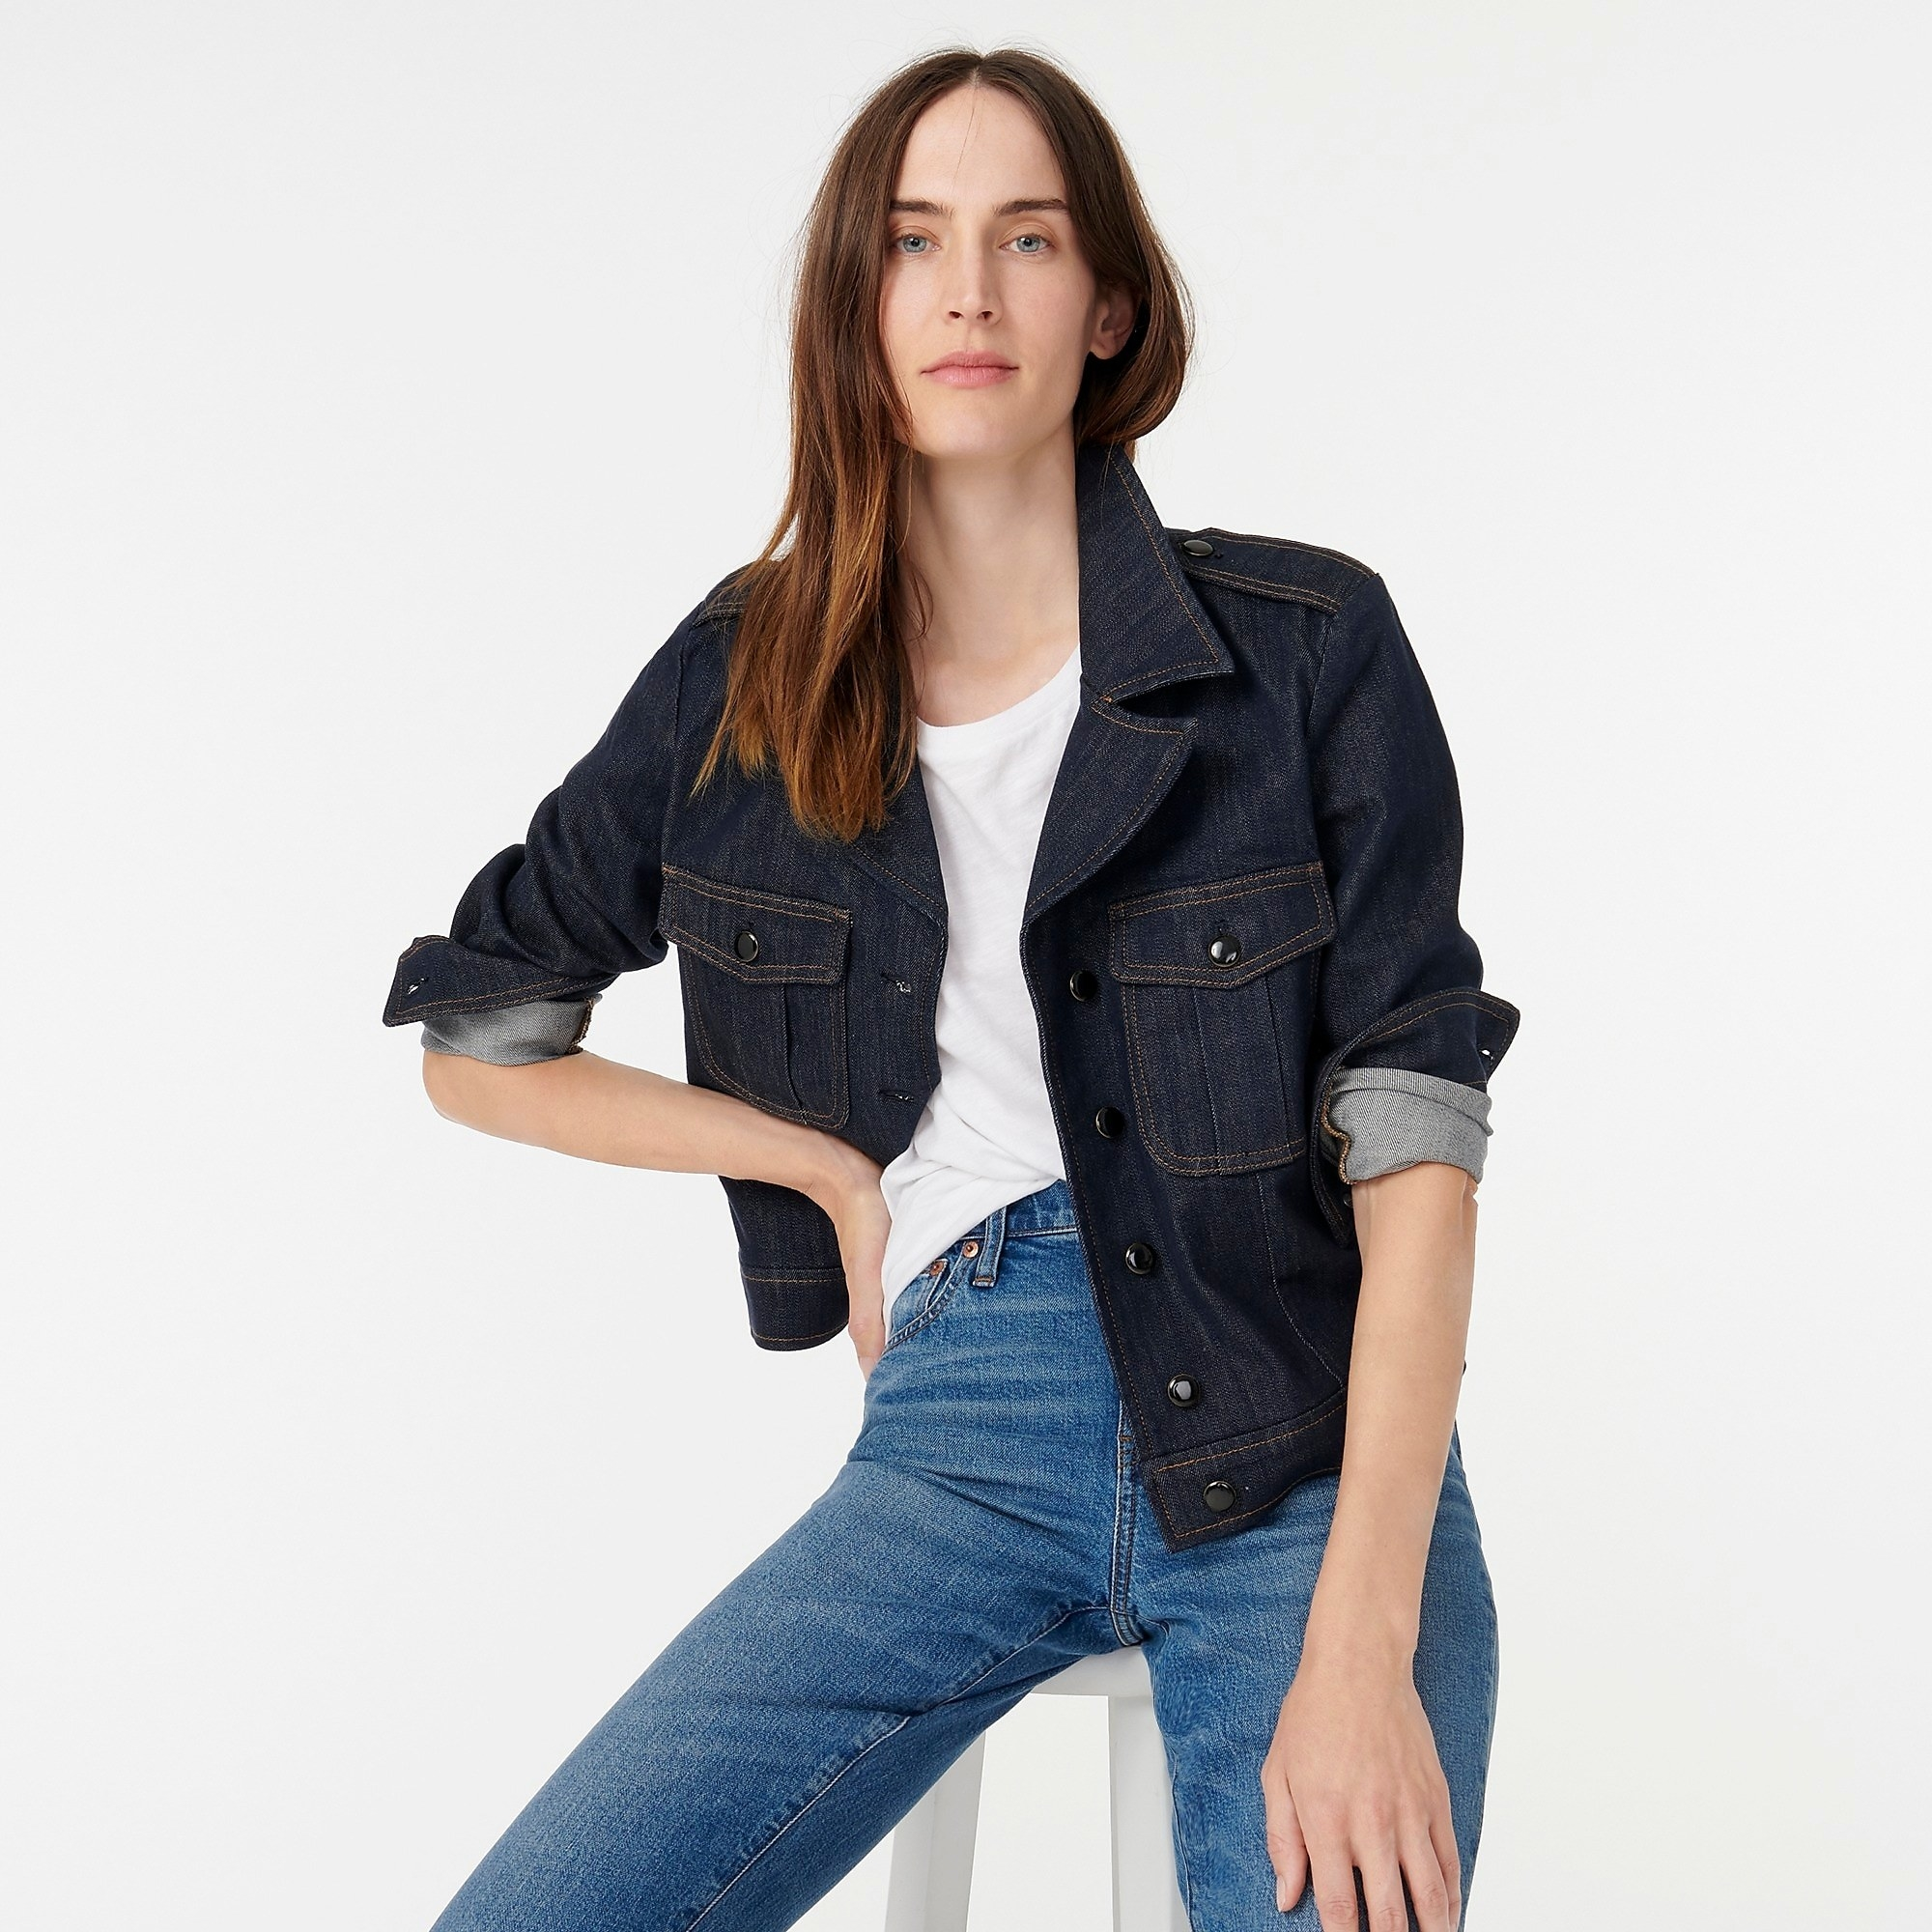 A model wearing the jacket with the sleeves pushed up to their elbows